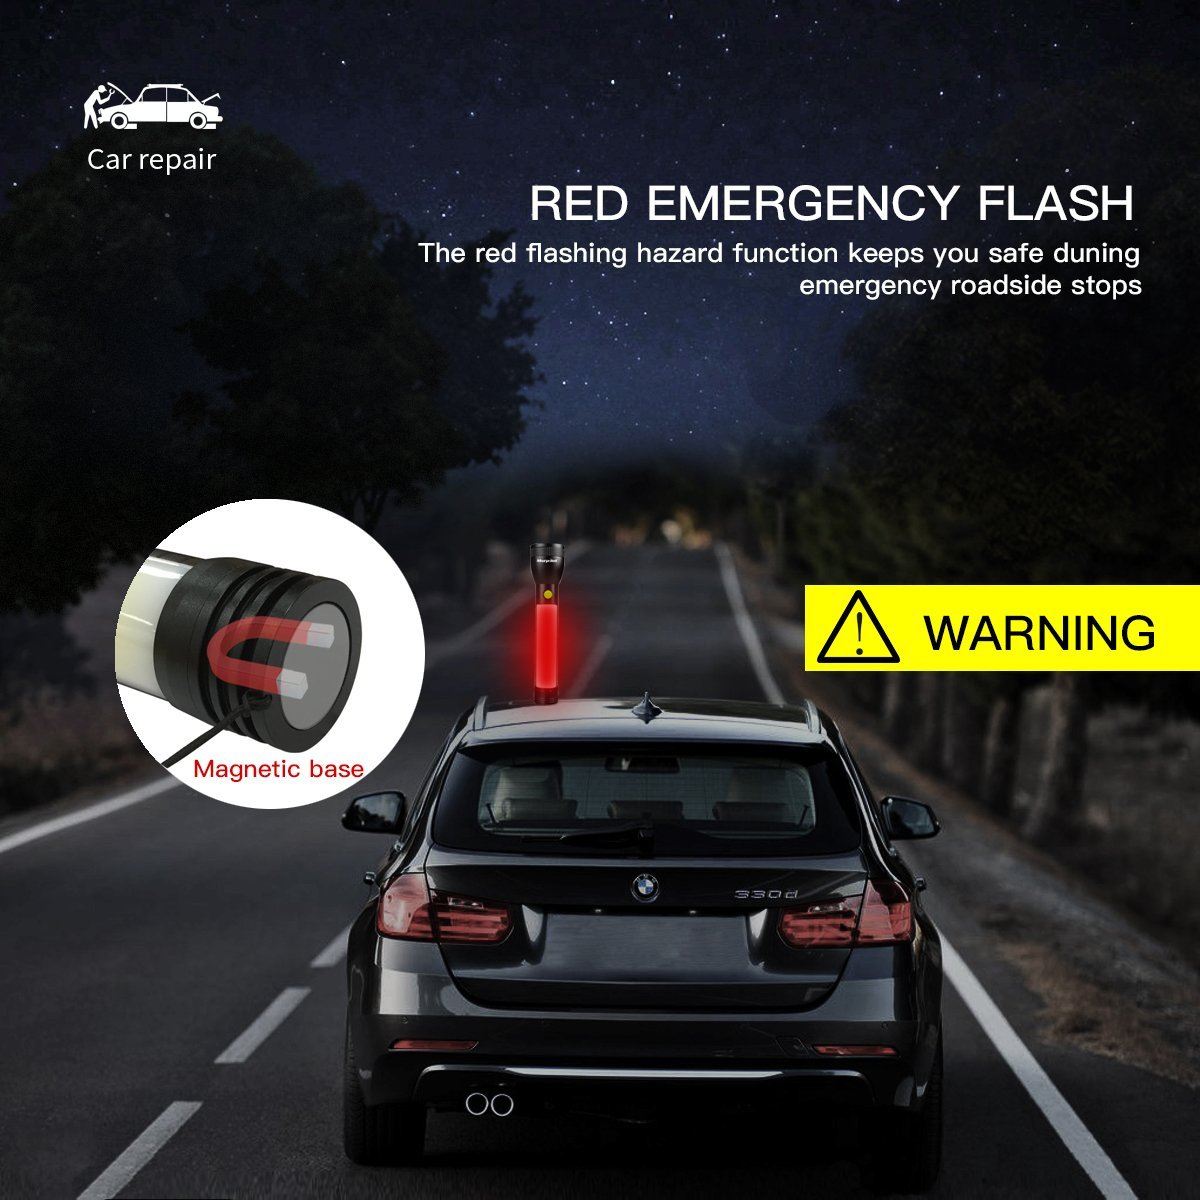 Emergency Work LED Flashlight, Morpilot 2in1 7 Lighting Modes with Magnetic Base and Red Light Ultra Bright COB Light , for Car, Hiking, Hurricane, Outage, Garage